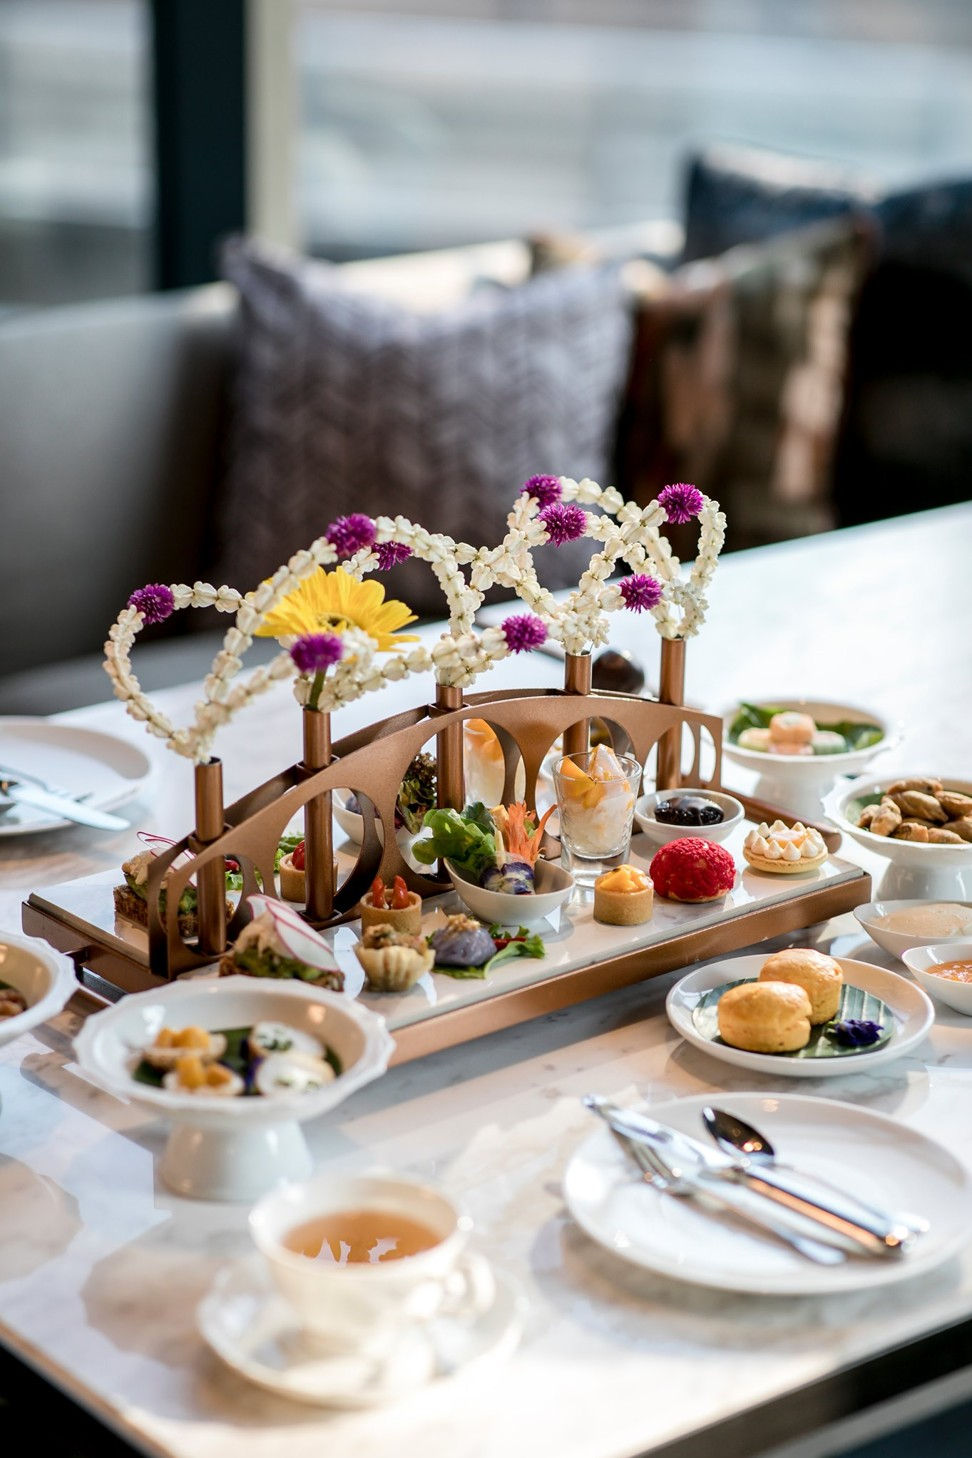 5 luxury afternoon teas in Asia to get a taste of the local culture